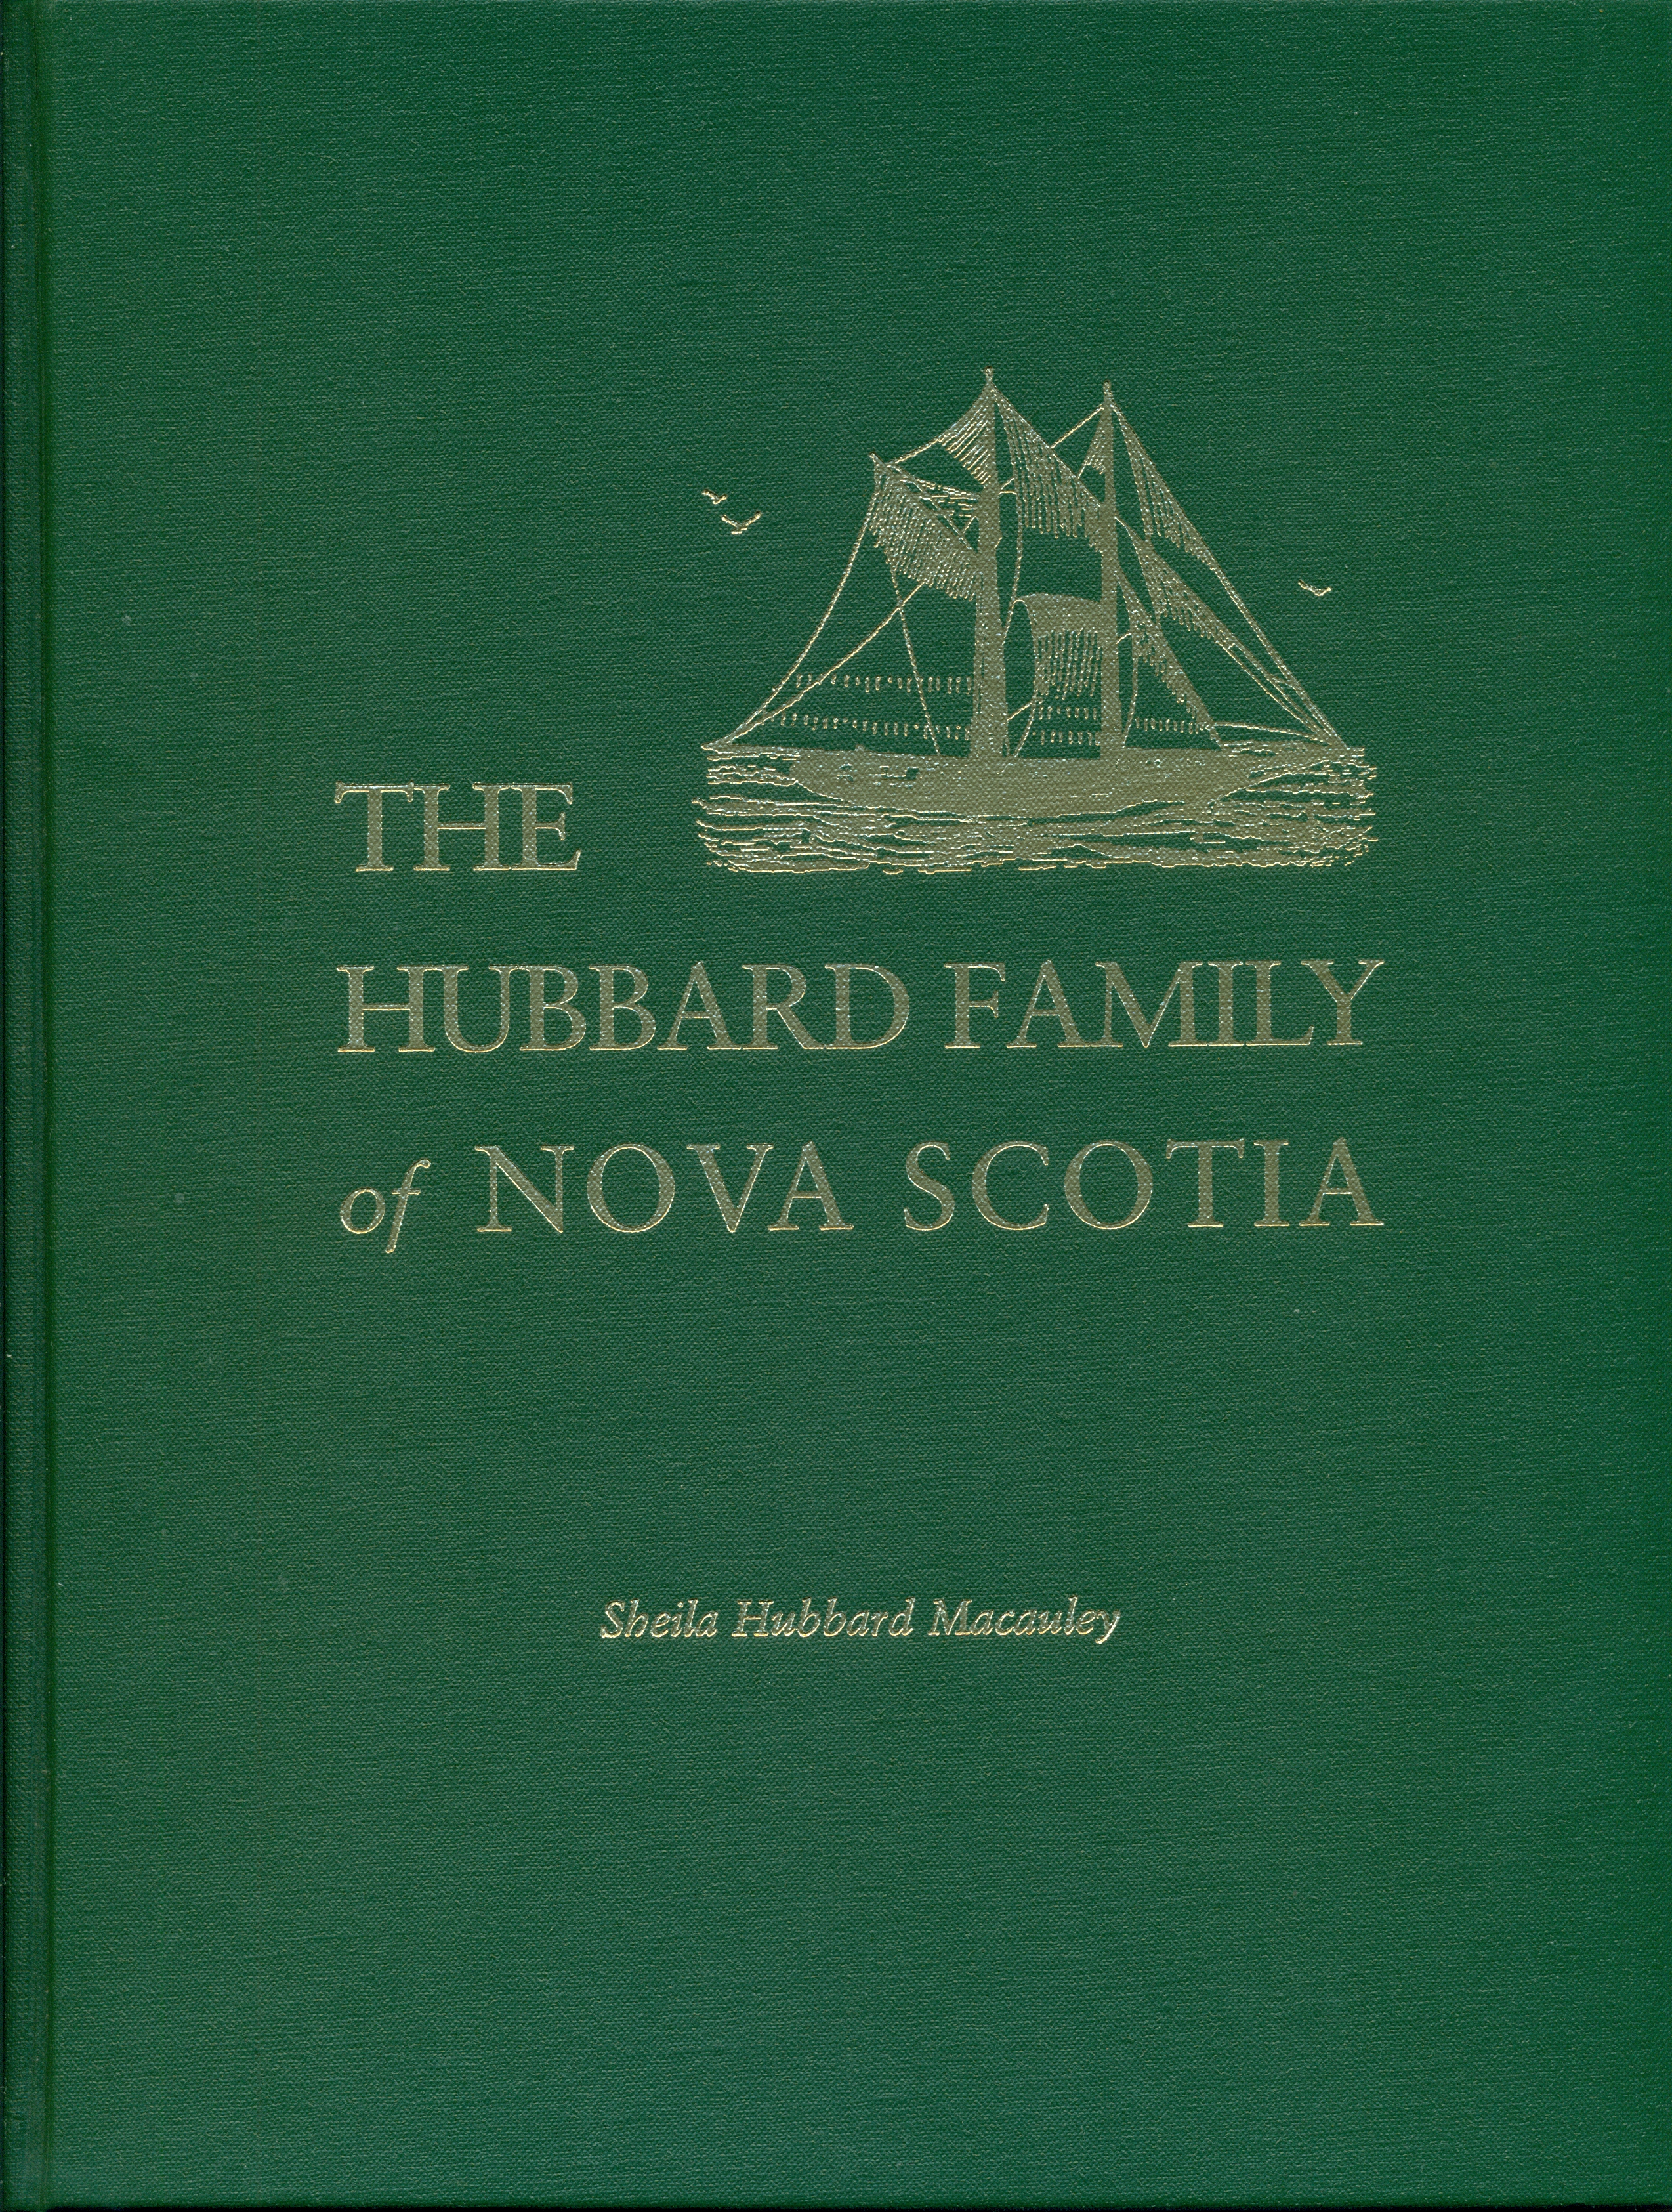 The Hubbard Family of Nova Scotia